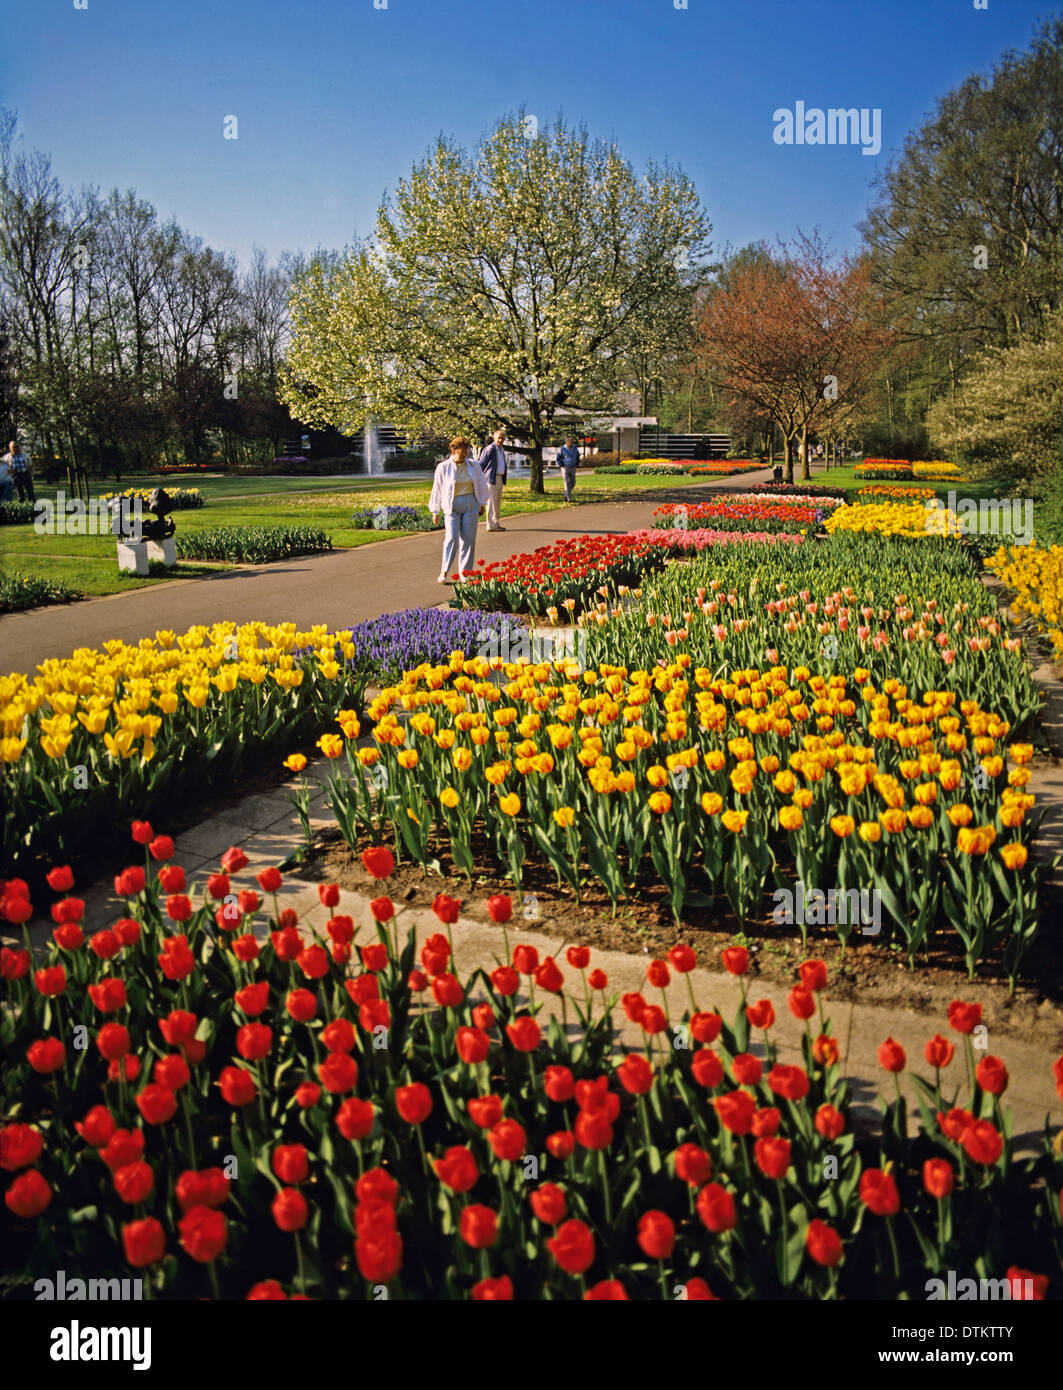 Tulip display at Keukenhof also known as the Garden of Europe, the ...